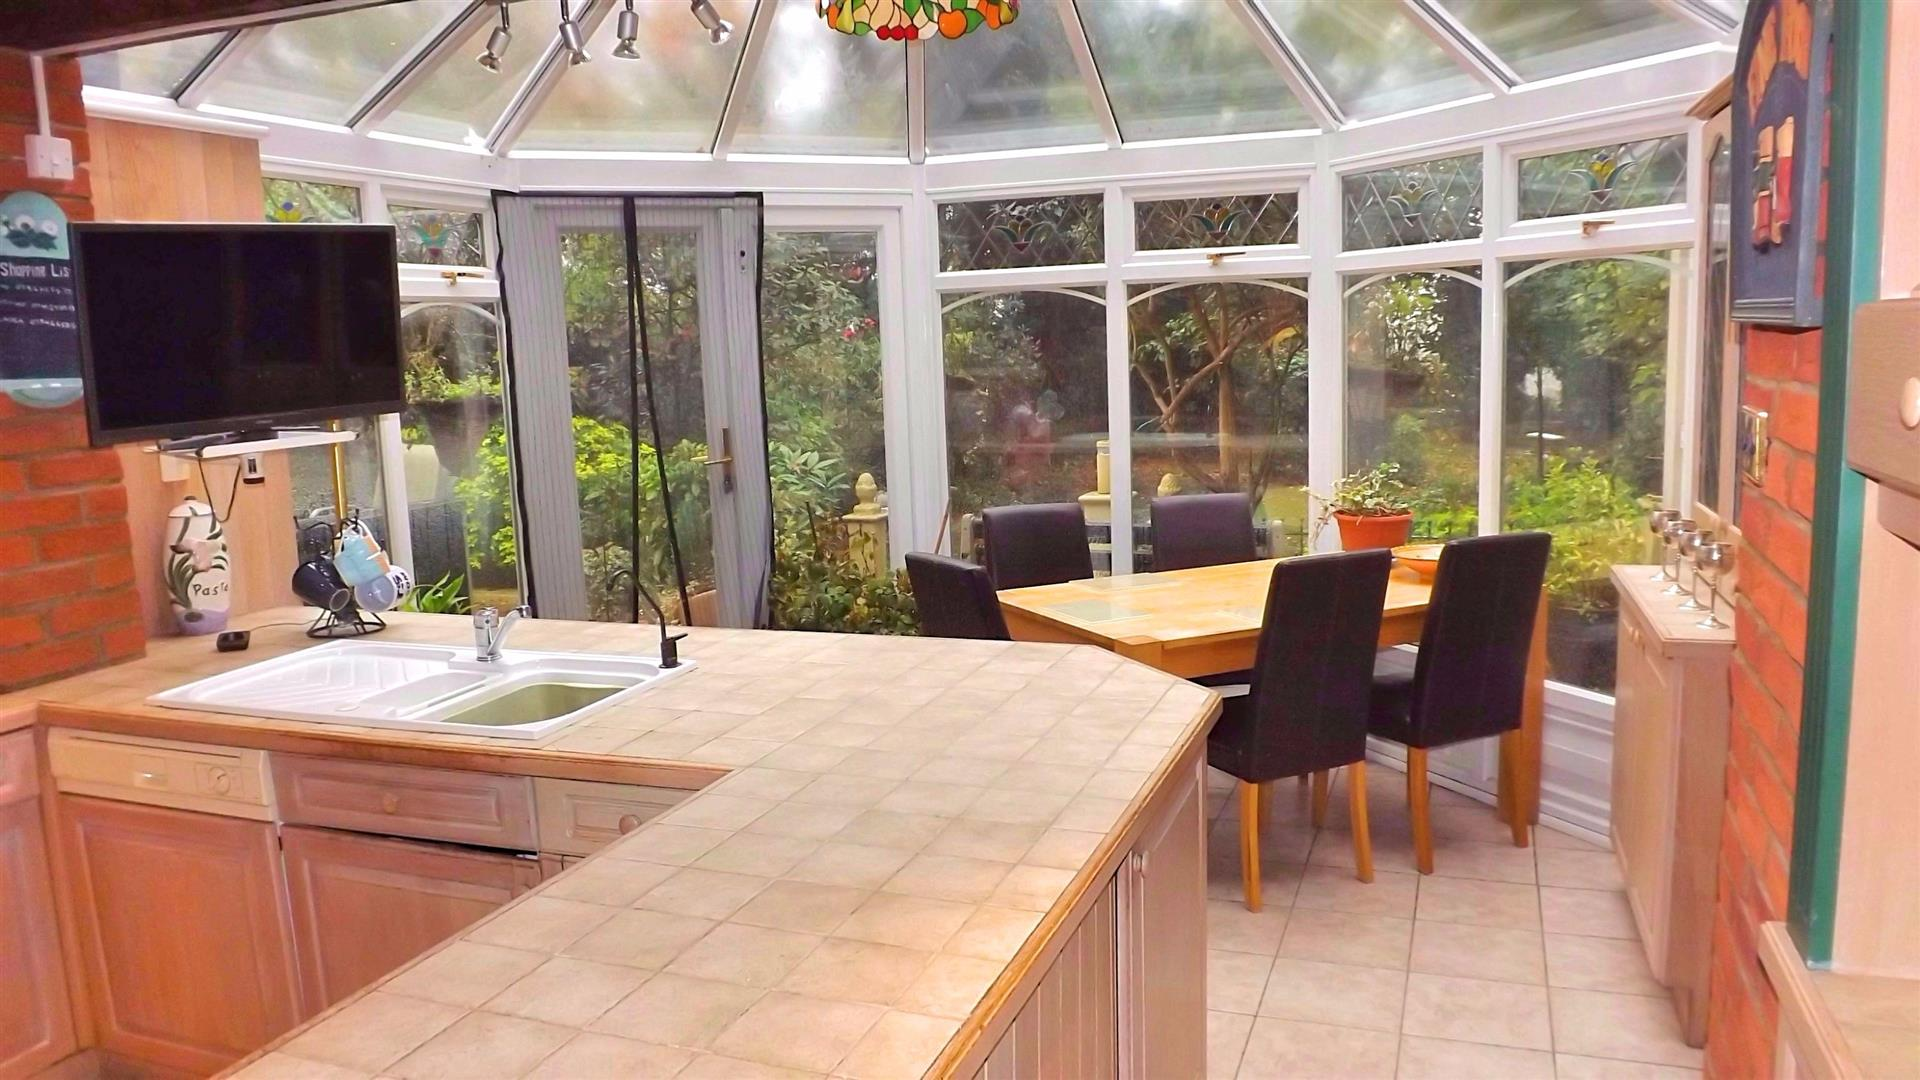 KITCHEN OPEN TO CONSERVATORY